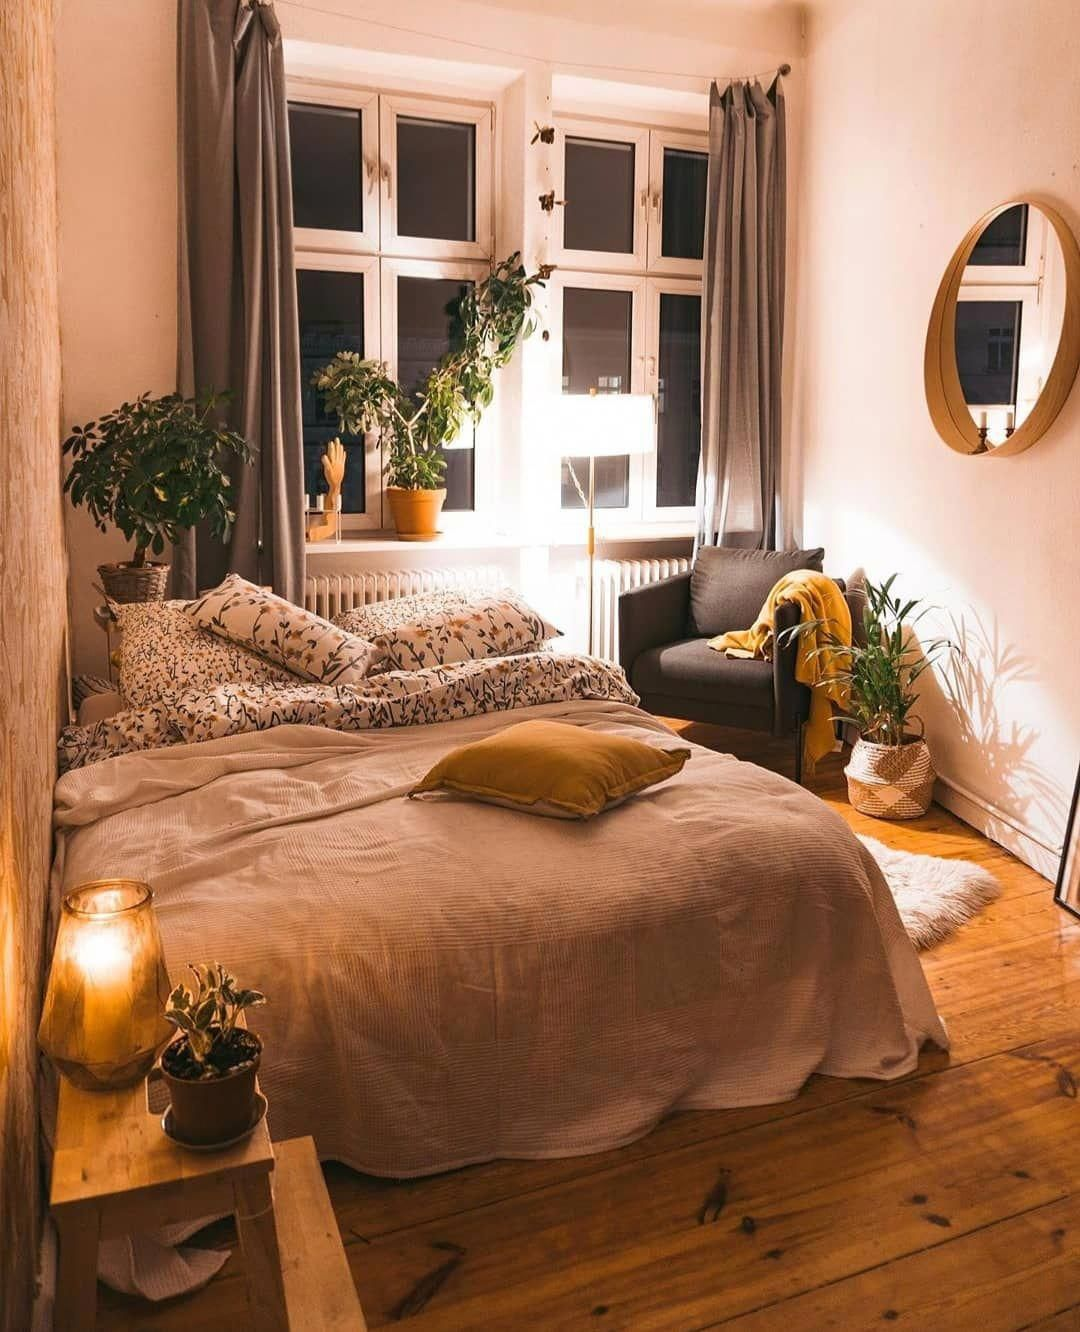 Home Decor Design On Instagram I Love This Cozy Bedroom Especially The Real Wooden Floor Gives Tha In 2020 Home Decor Bedroom Small Bedroom Decor Small Bedroom